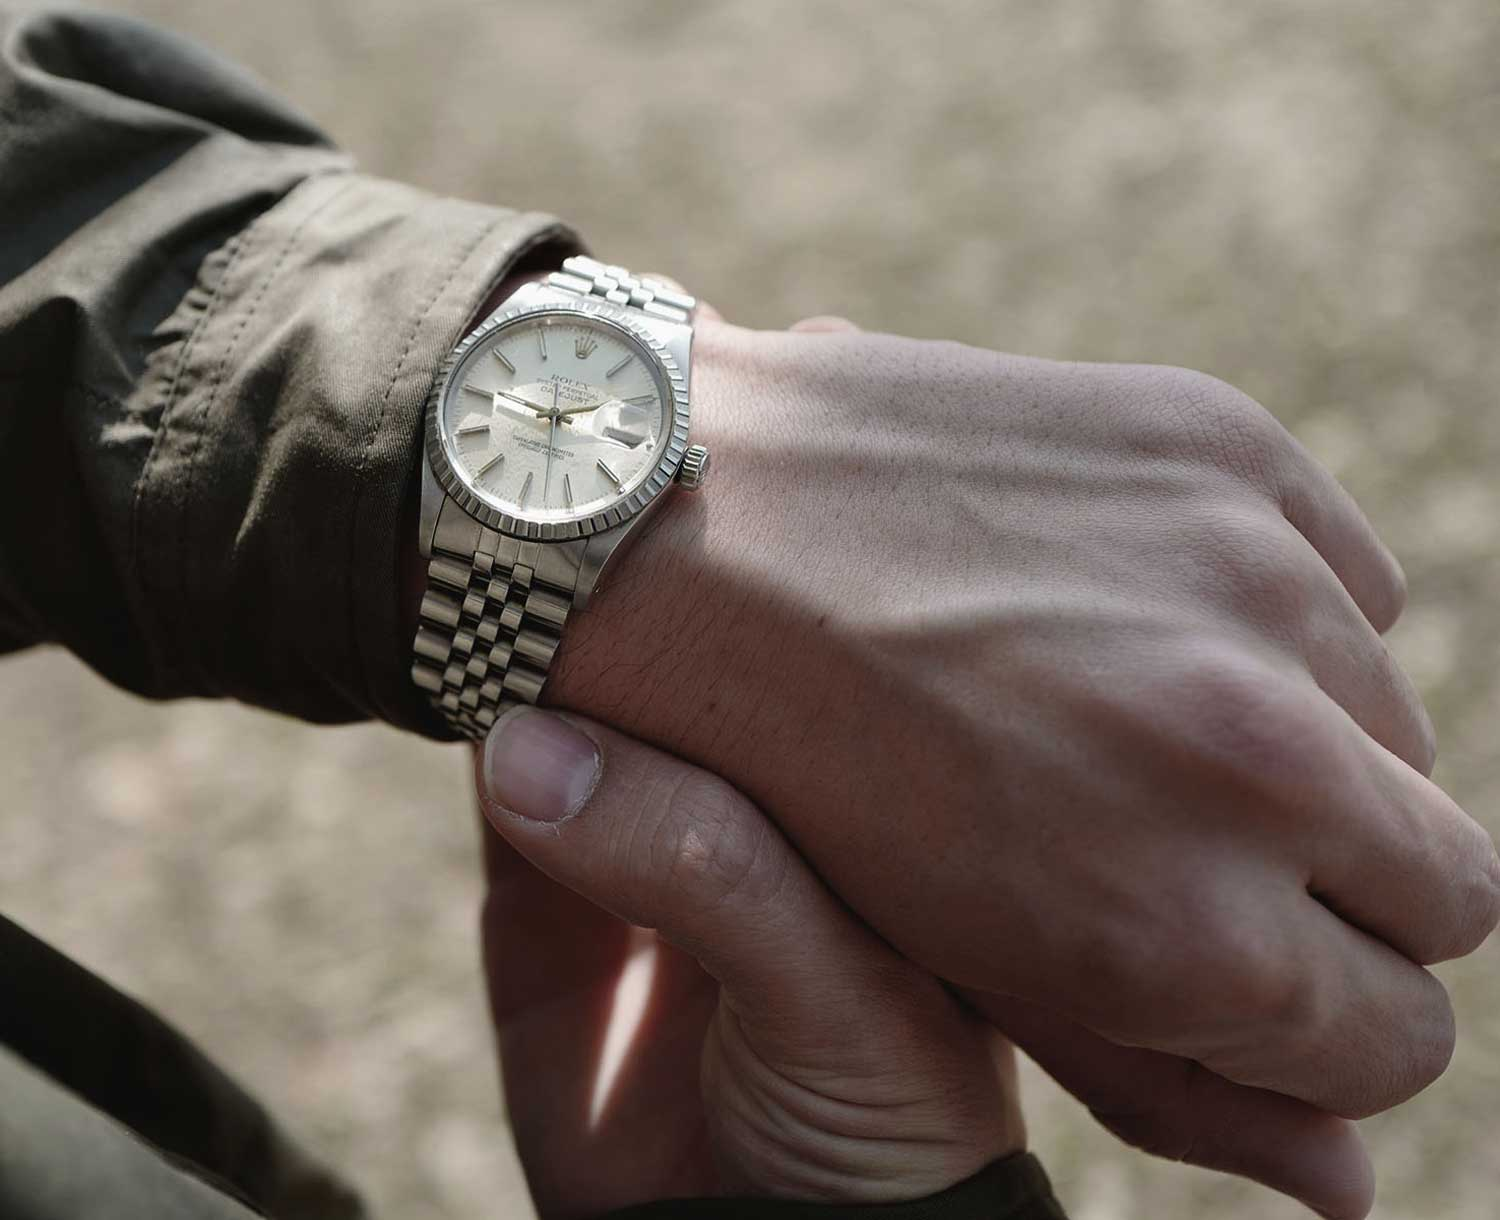 Berend's first Rolex was a Datejust reference 16030